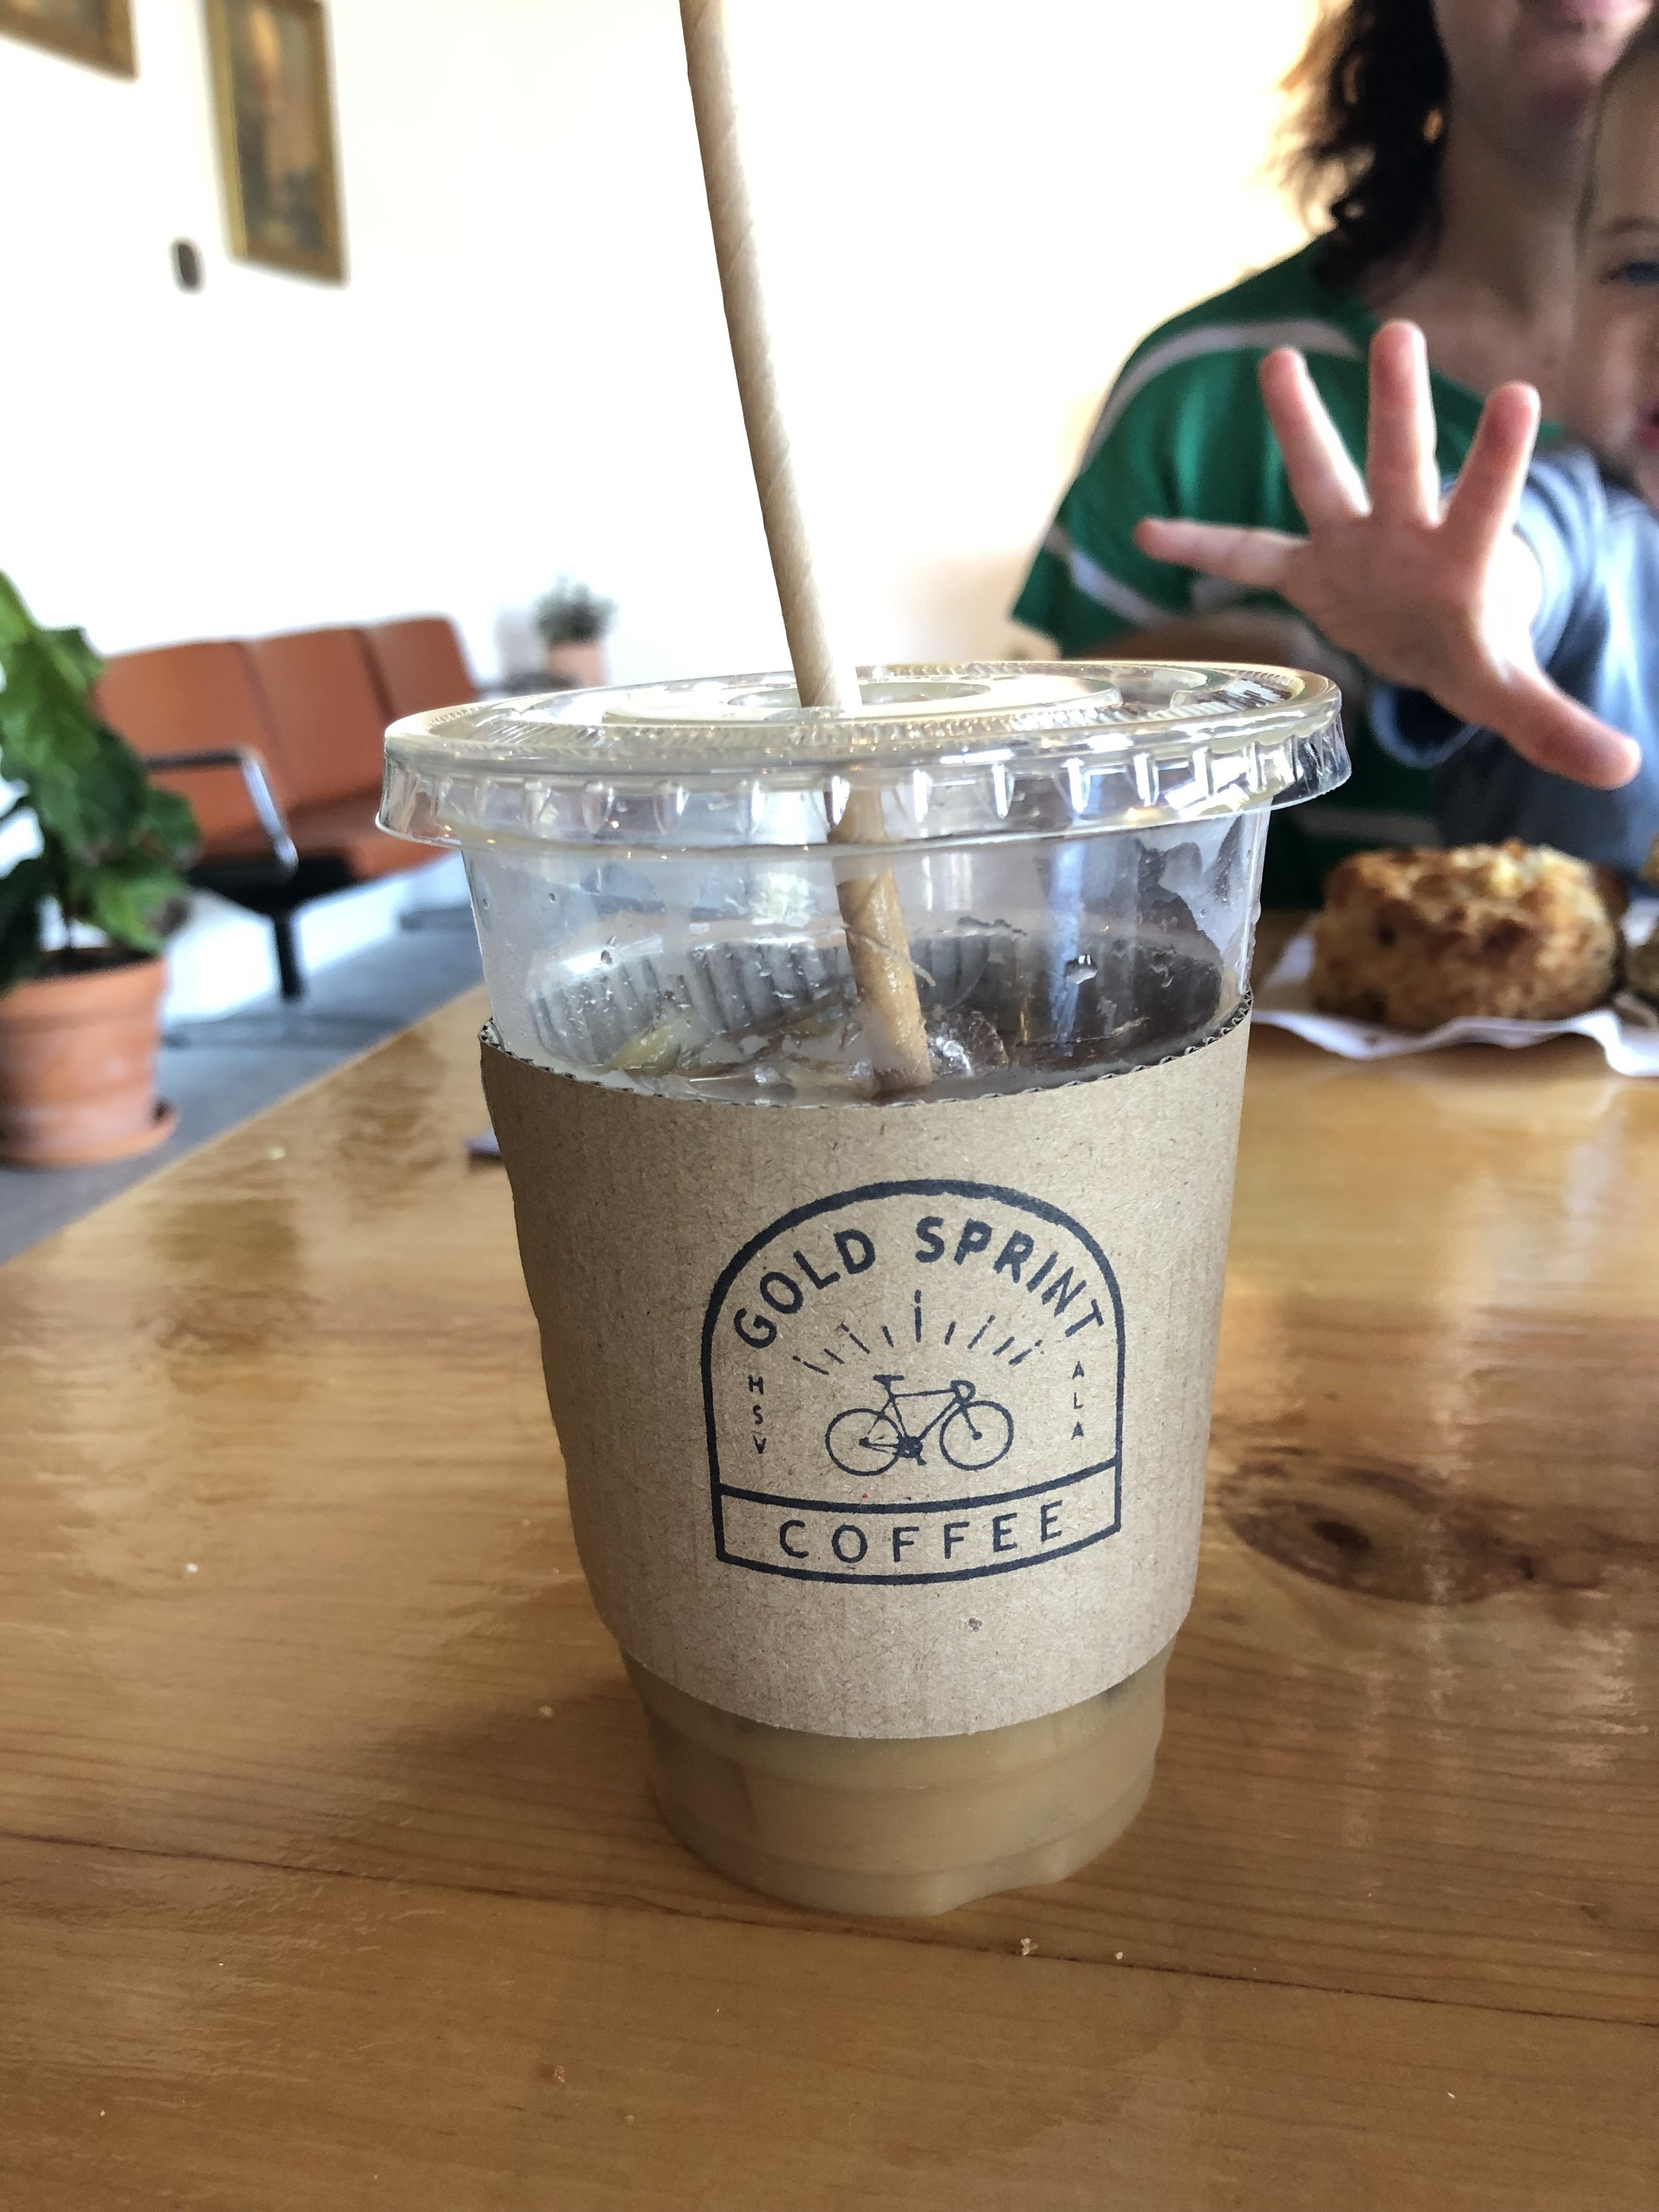 Gold Sprint Coffee  located in the Lowe Mill neighborhood  Coffee. Lattes. Beer & Food available. Pastries from Good Company and herbal tinctures from local herbalist Remedy Herbs.